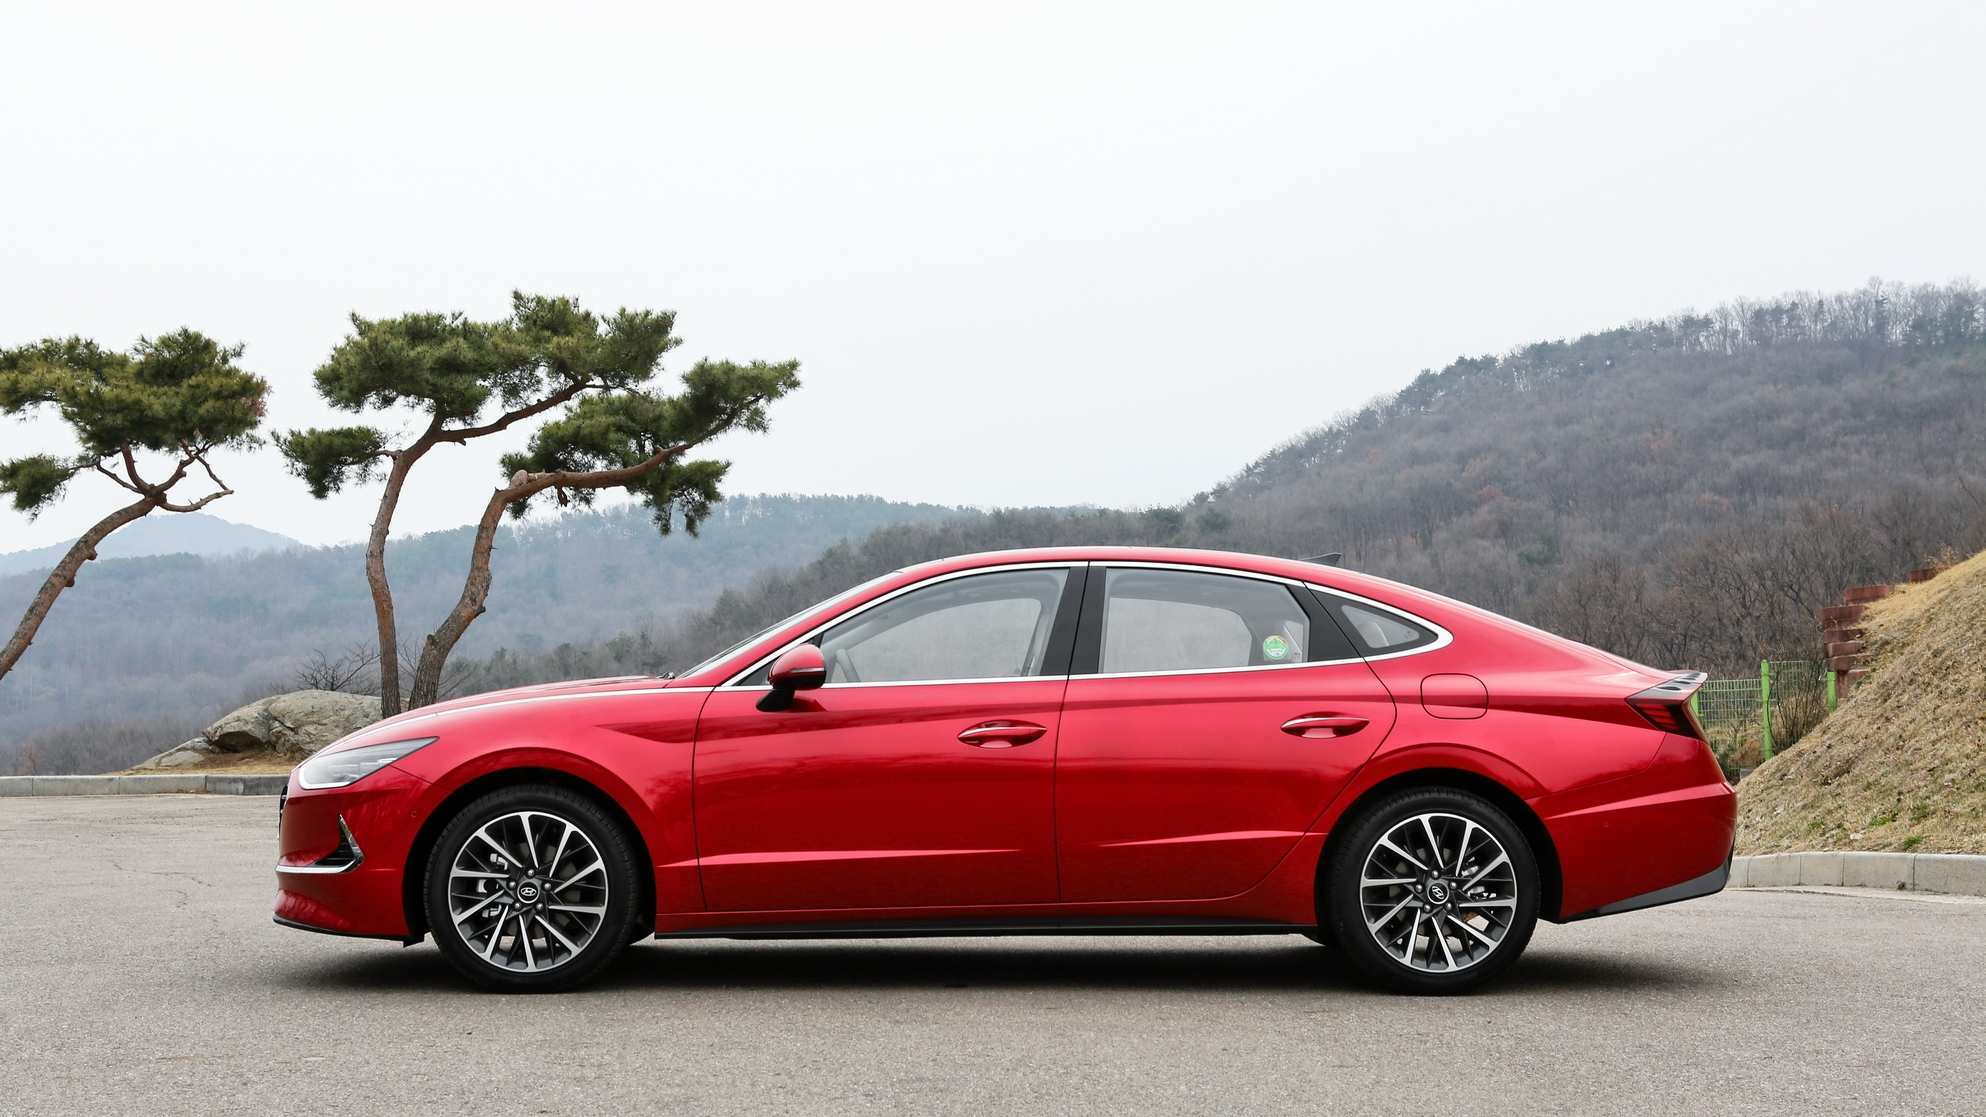 54 The Hyundai Sonata 2020 Price Design and Review